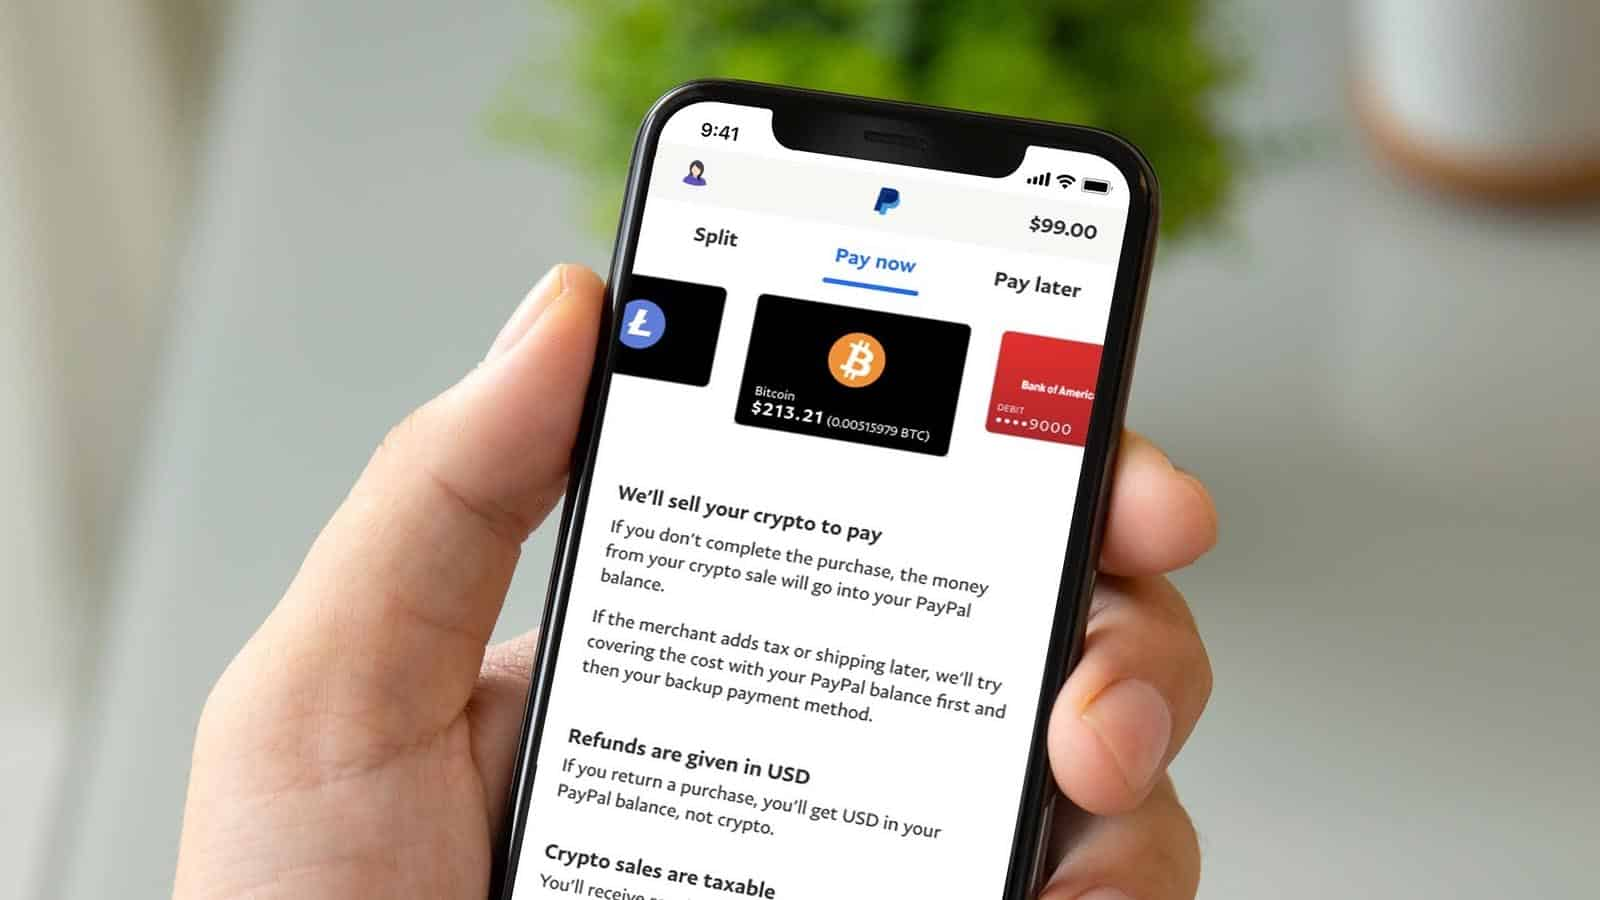 paypal crypto purchases on smartphone